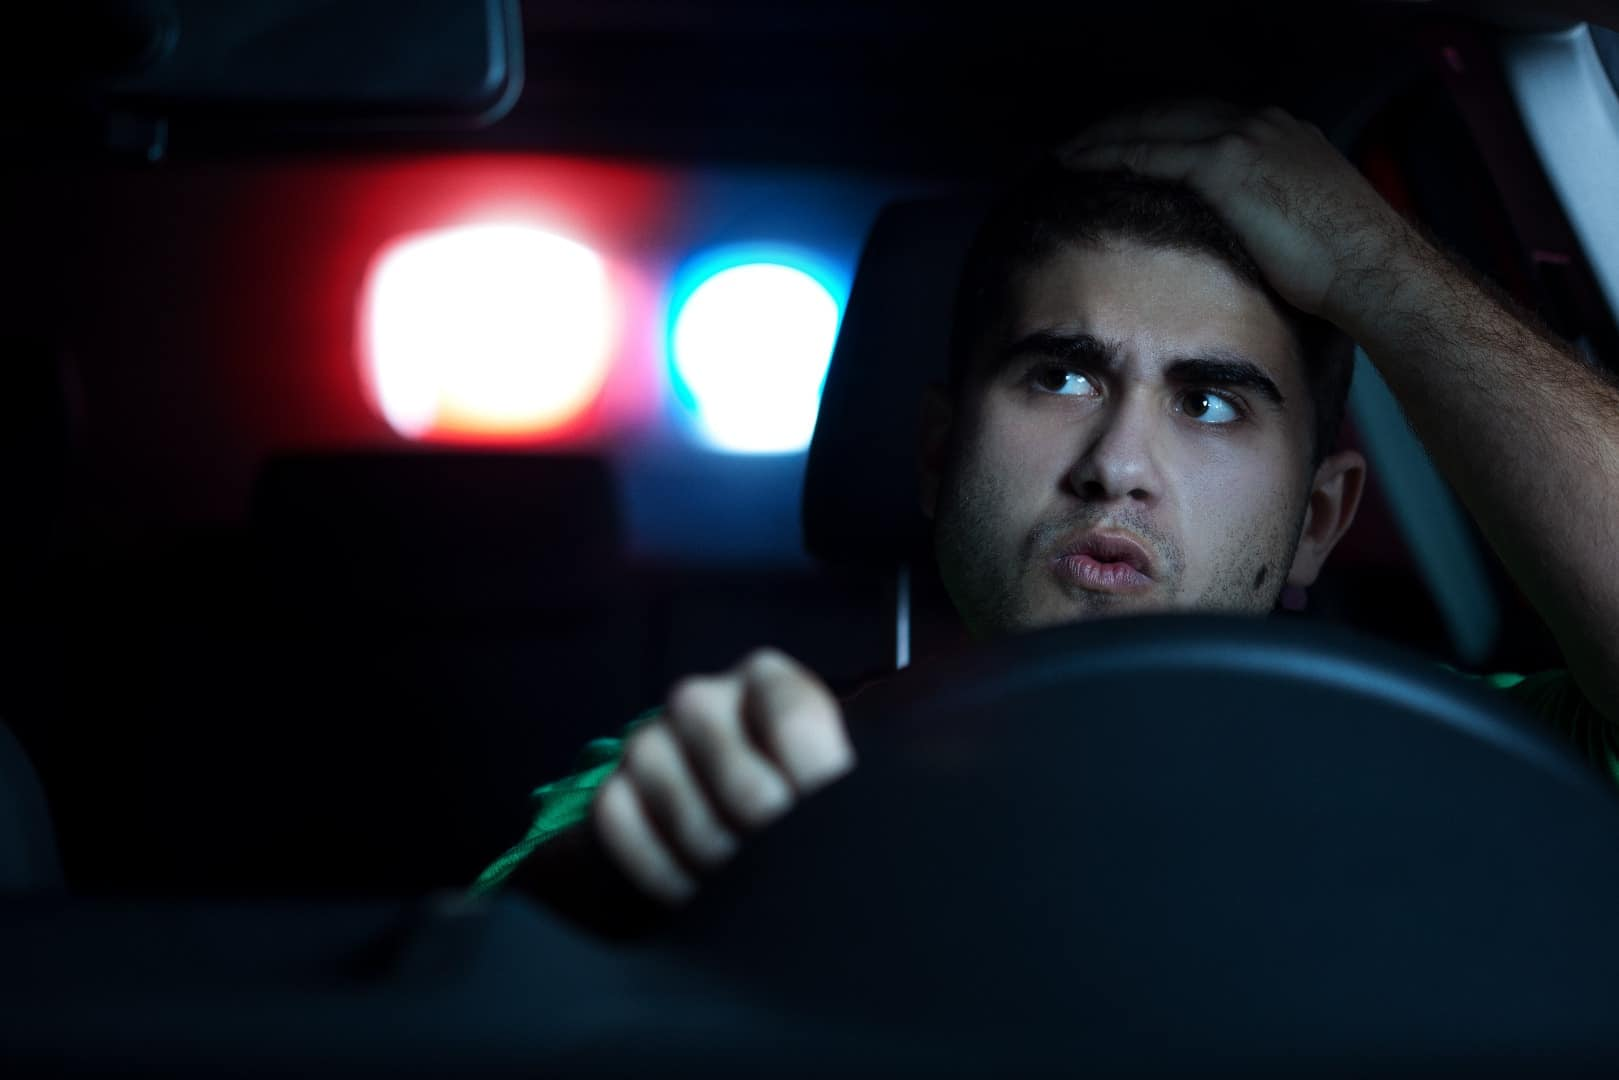 Pull Over By Police Officer min 1